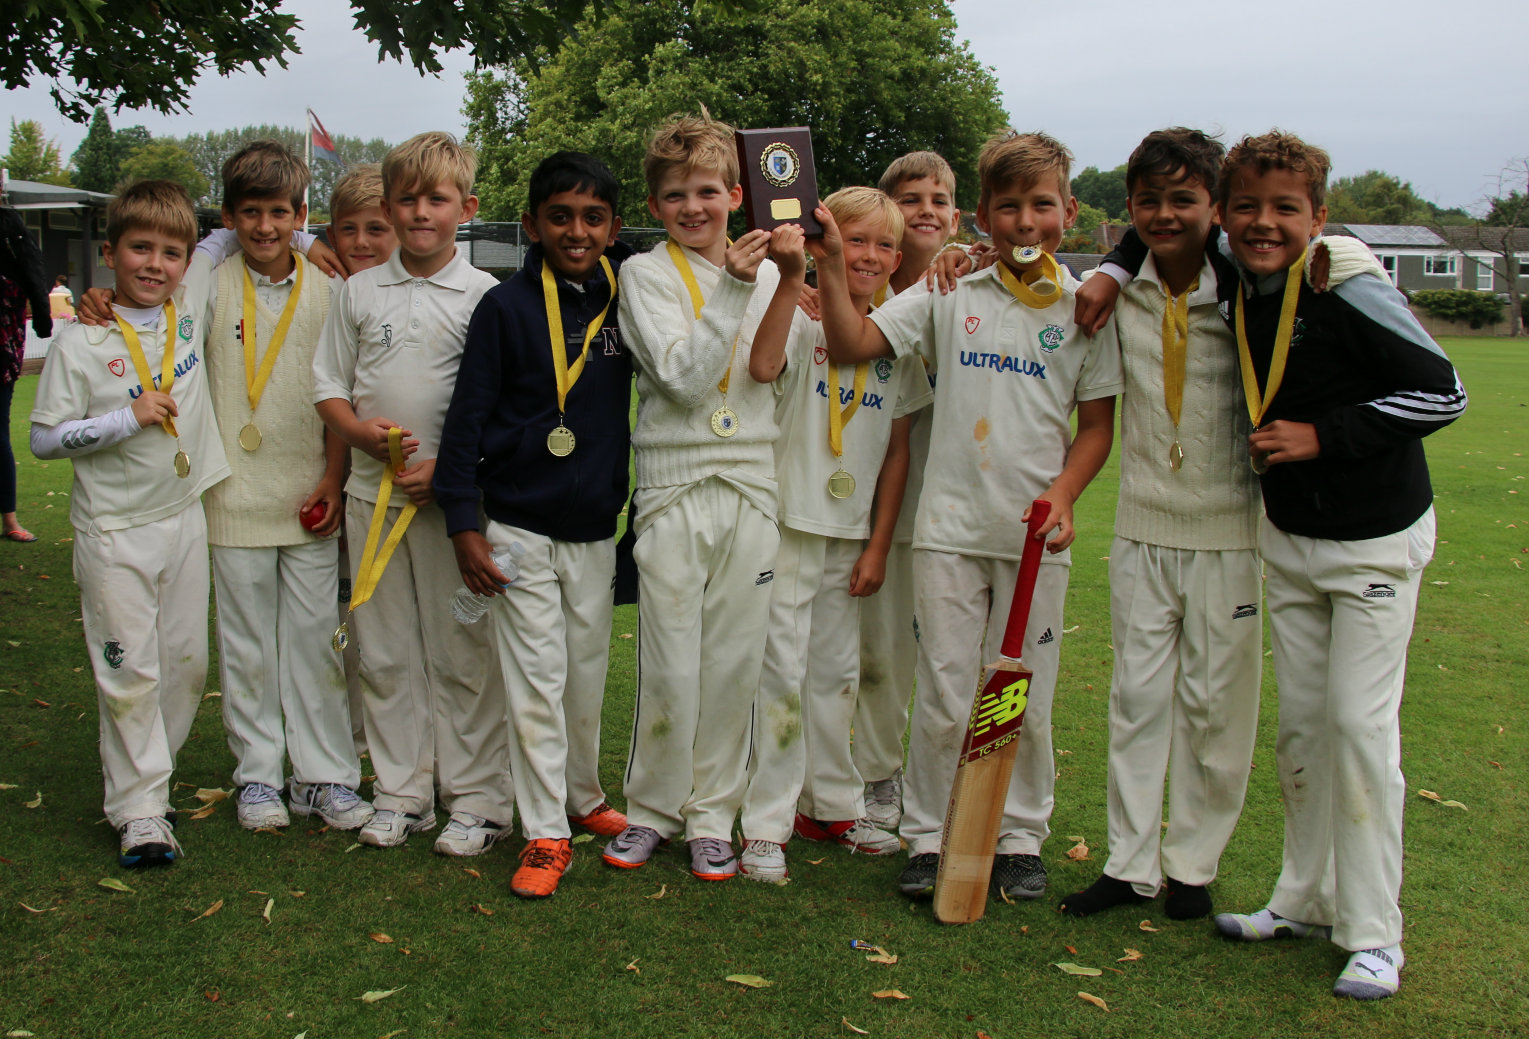 Junior Cricket Policies - The policies listed on this page ensure that junior members can enjoy their cricket in a positive, safe and secure environment.